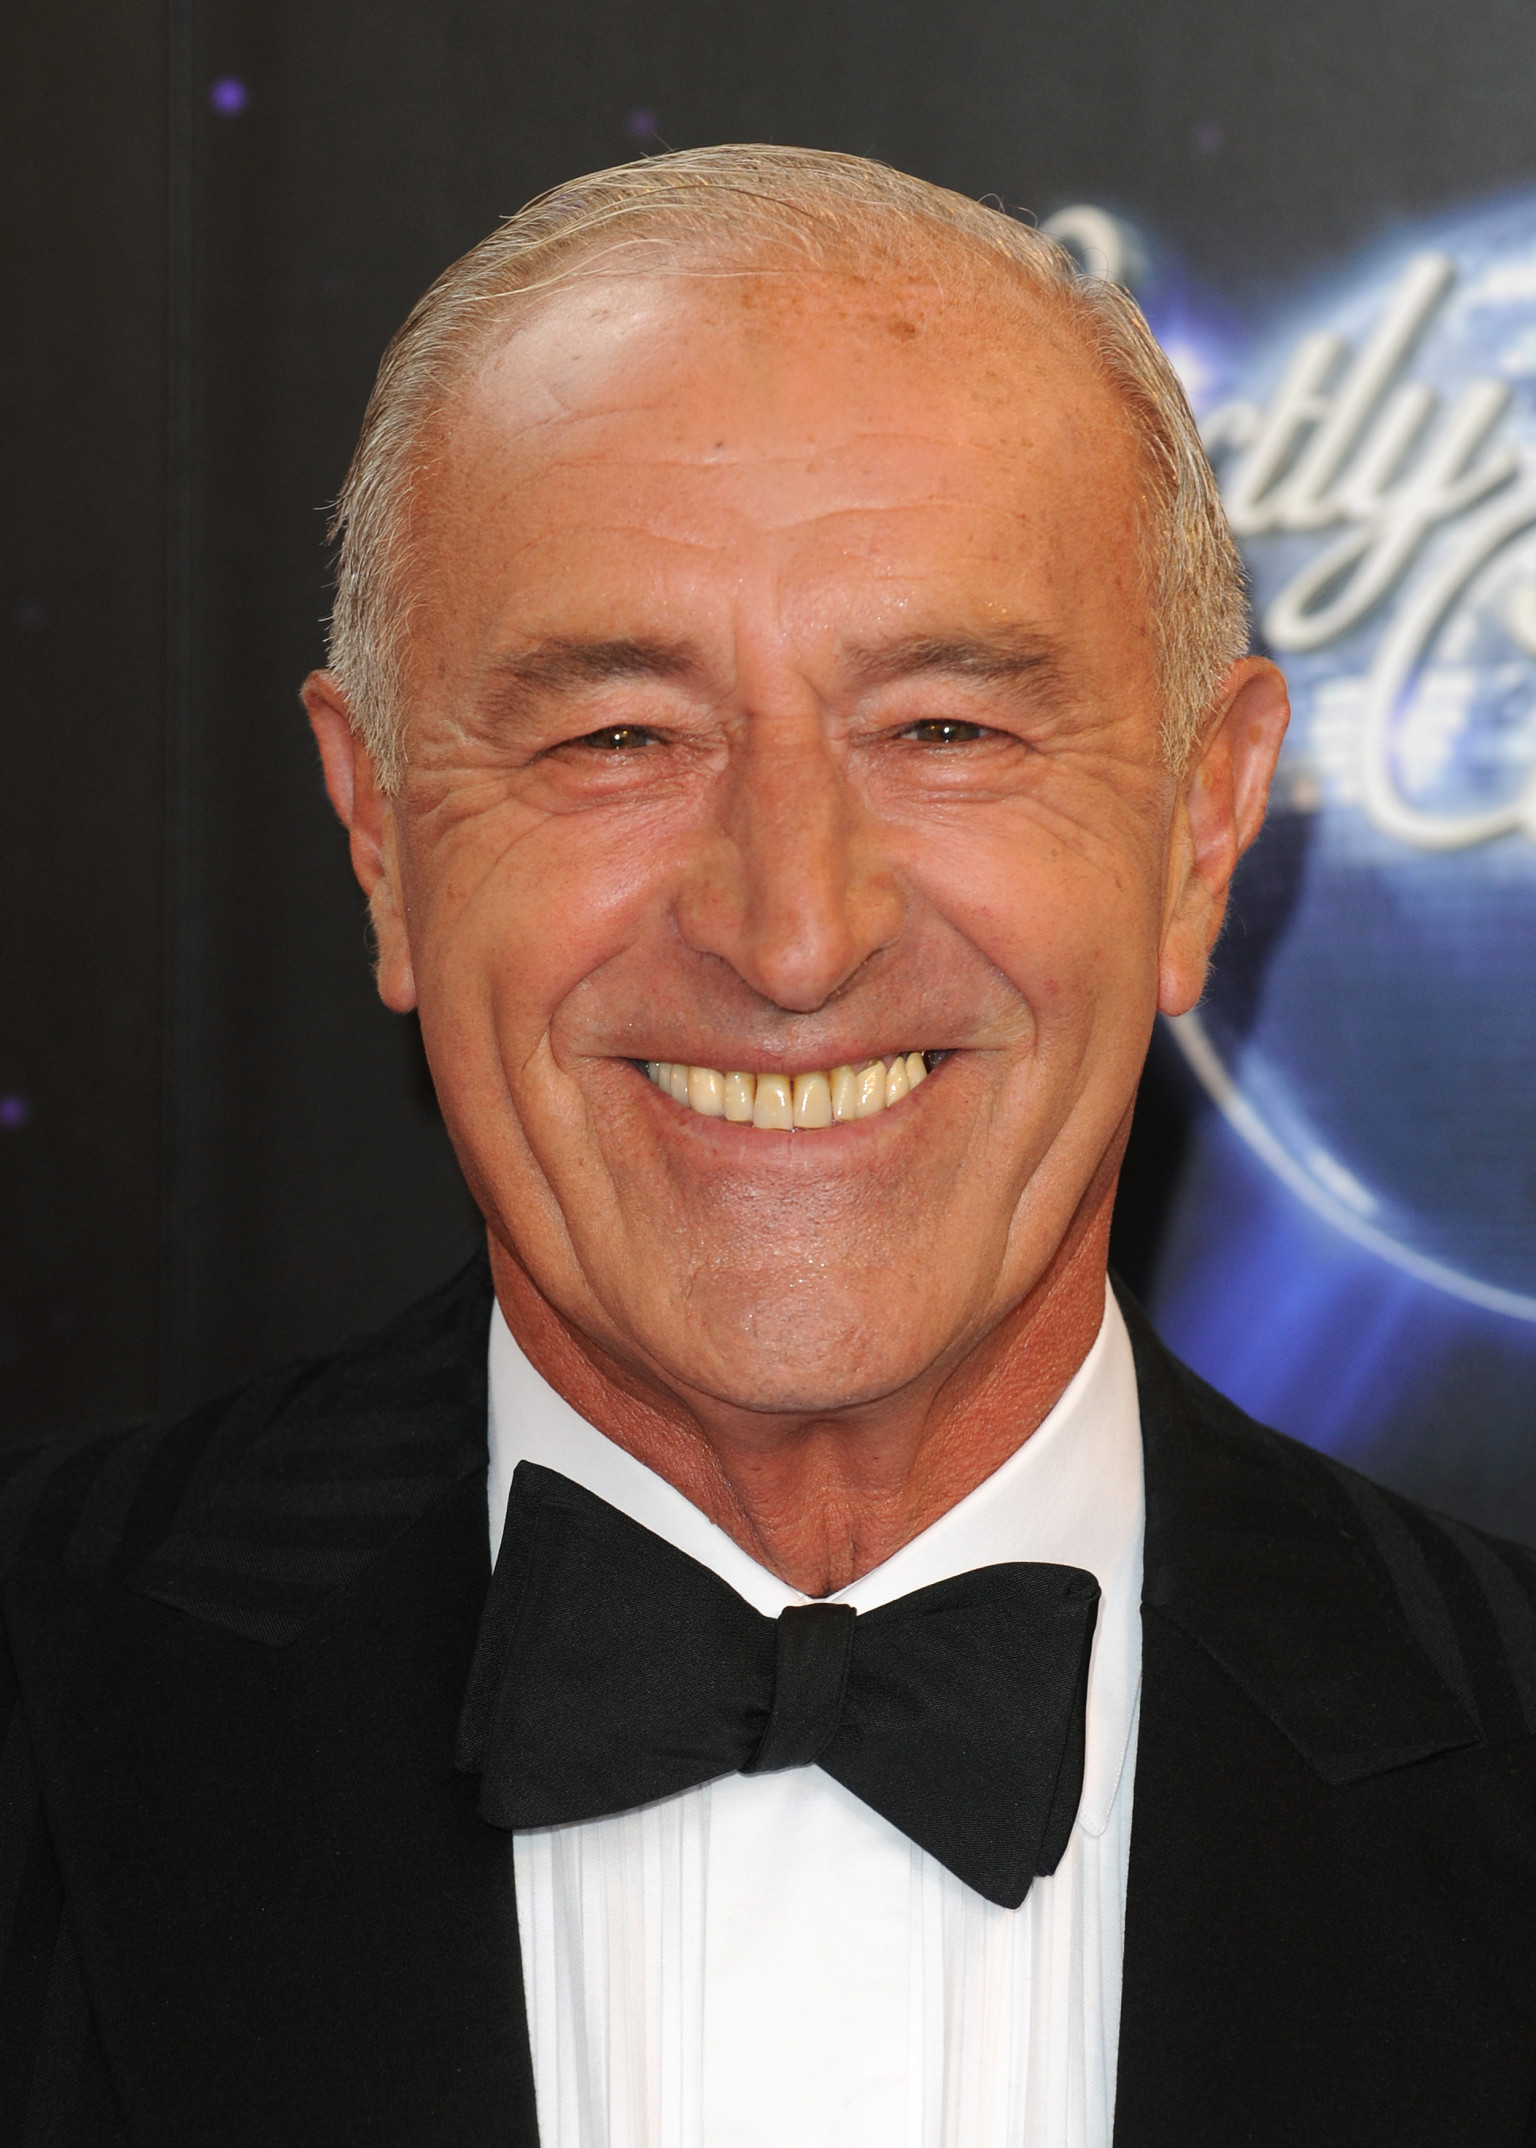 welder with Len Goodman 575831 W on USCSS Torrens as well Alien  Out of the Shadows together with Guild Of Master Craftsmen What This Means additionally Saldatura Tig Mig moreover Pete Postlethwaite.